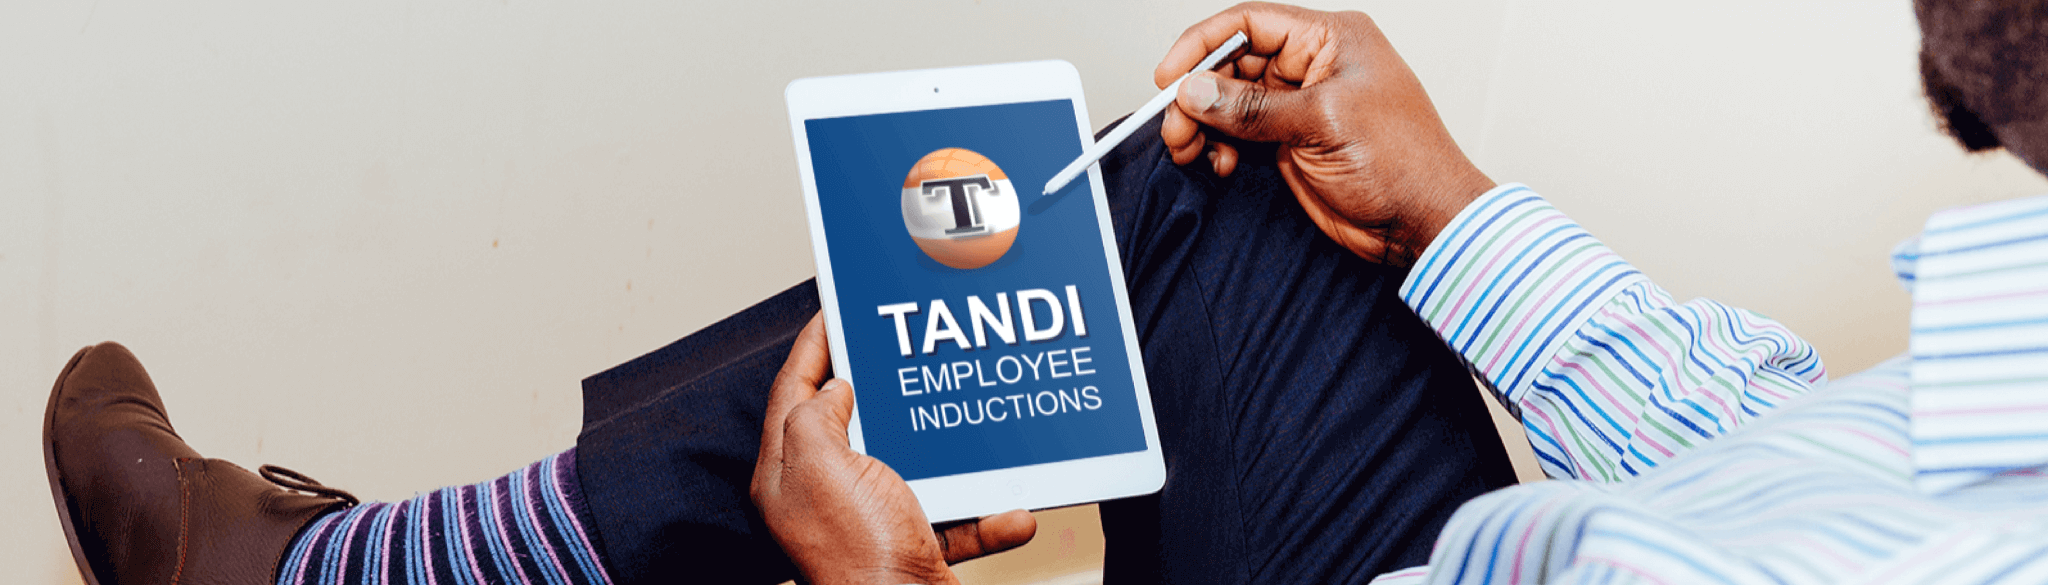 TANDI Employee Inductions